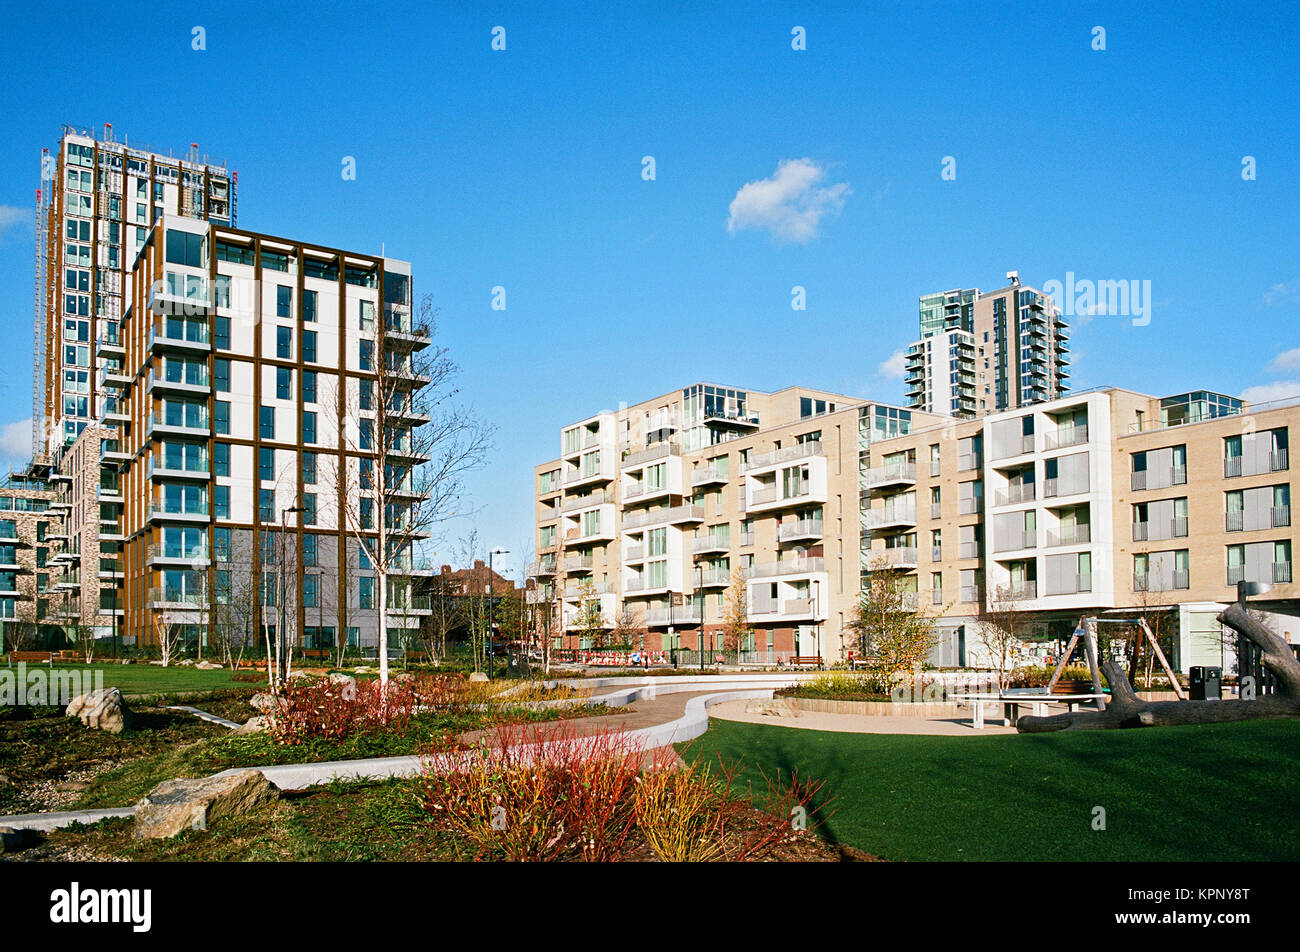 Brand new apartment buildings at Spring Park, Woodberry Down, near Finsbury Park, North London UK - Stock Image